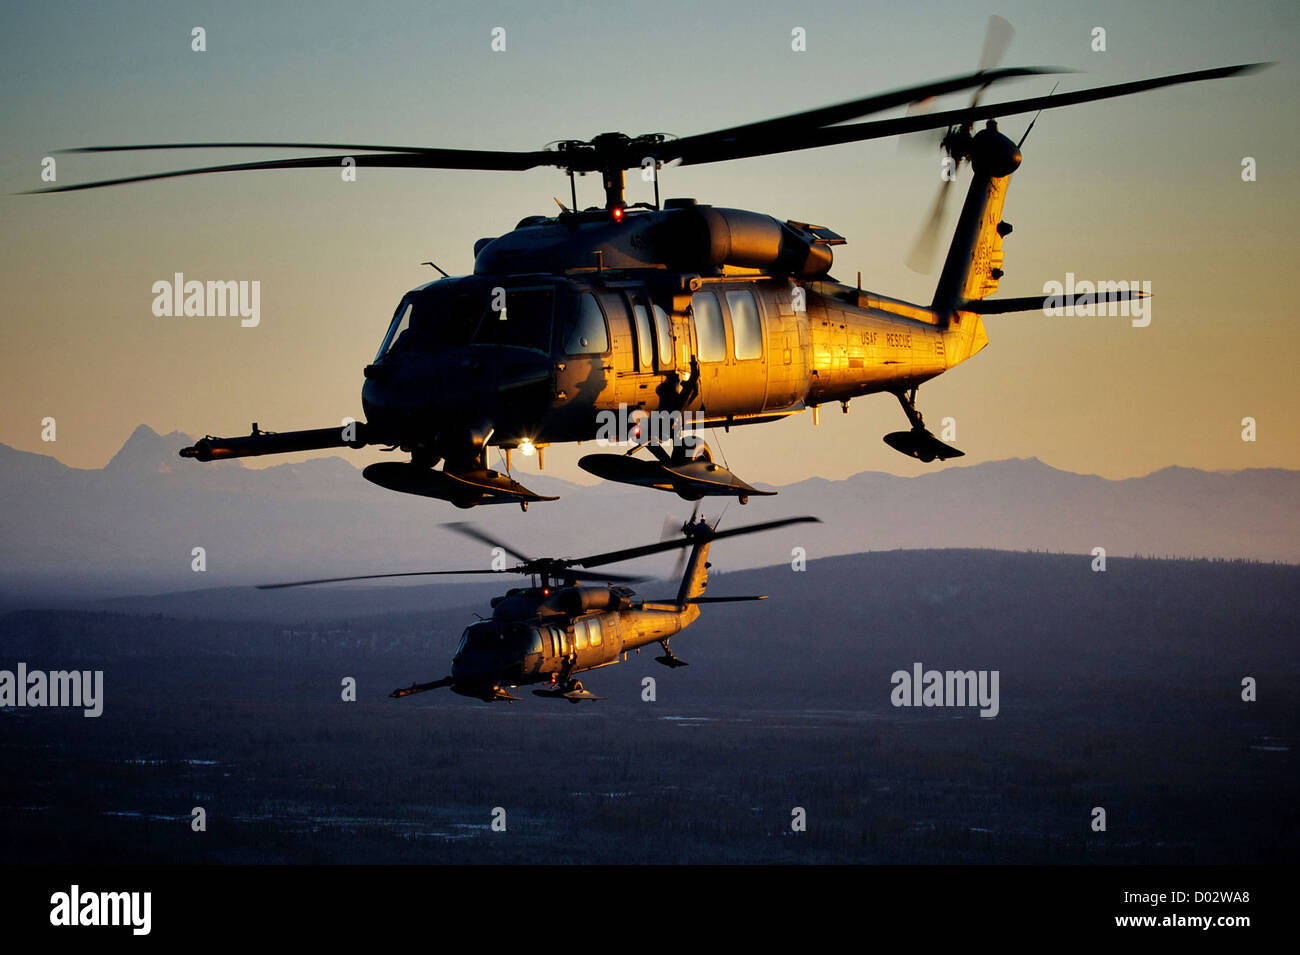 The US Air Force HH-60 Pave Hawk flies at sunset January 19, 2012. - Stock Image